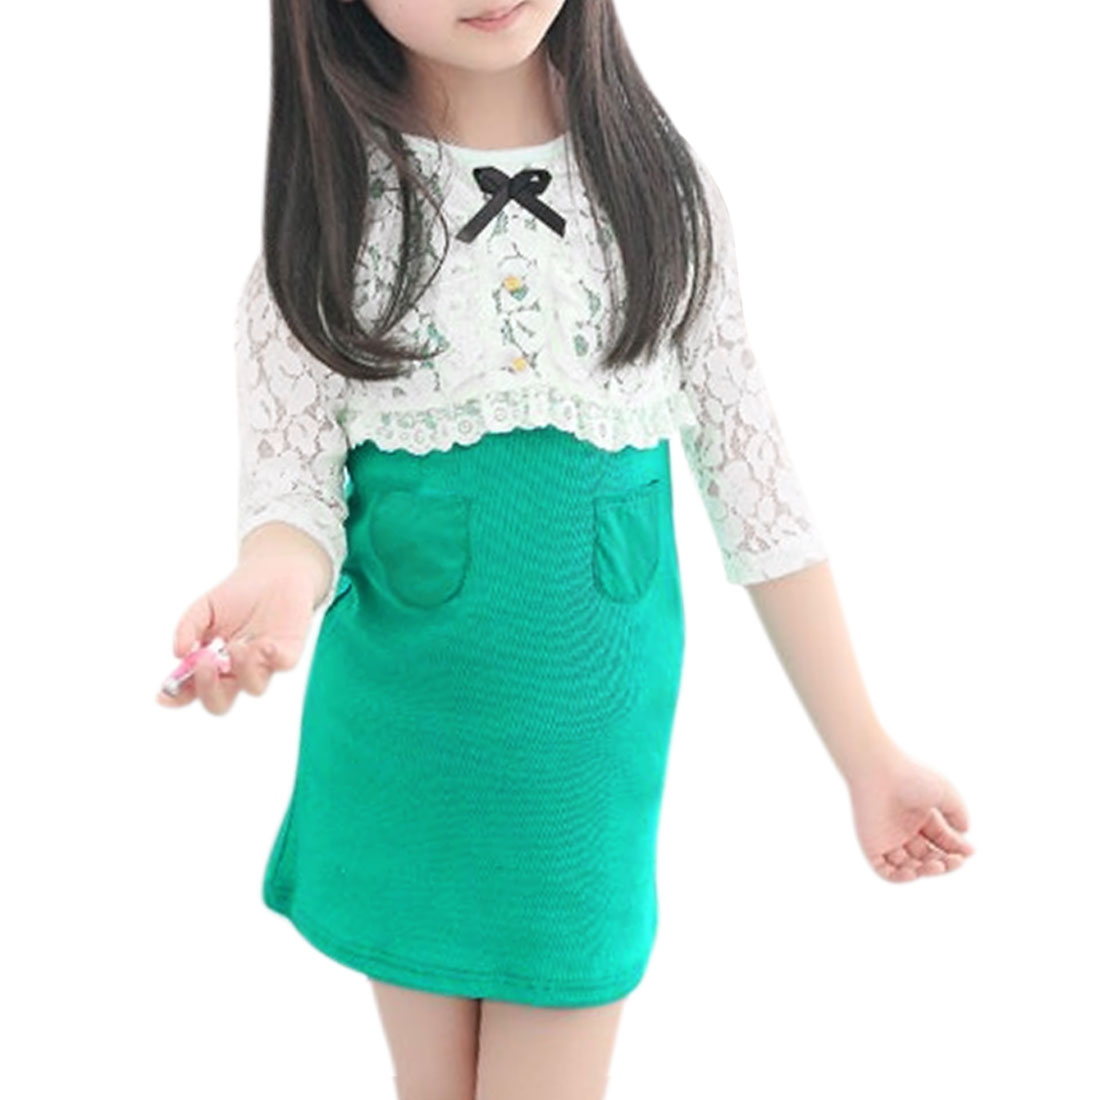 Girls Floral Design Lace Shrug w Tank Dress Sets Allegra Kids Green 5